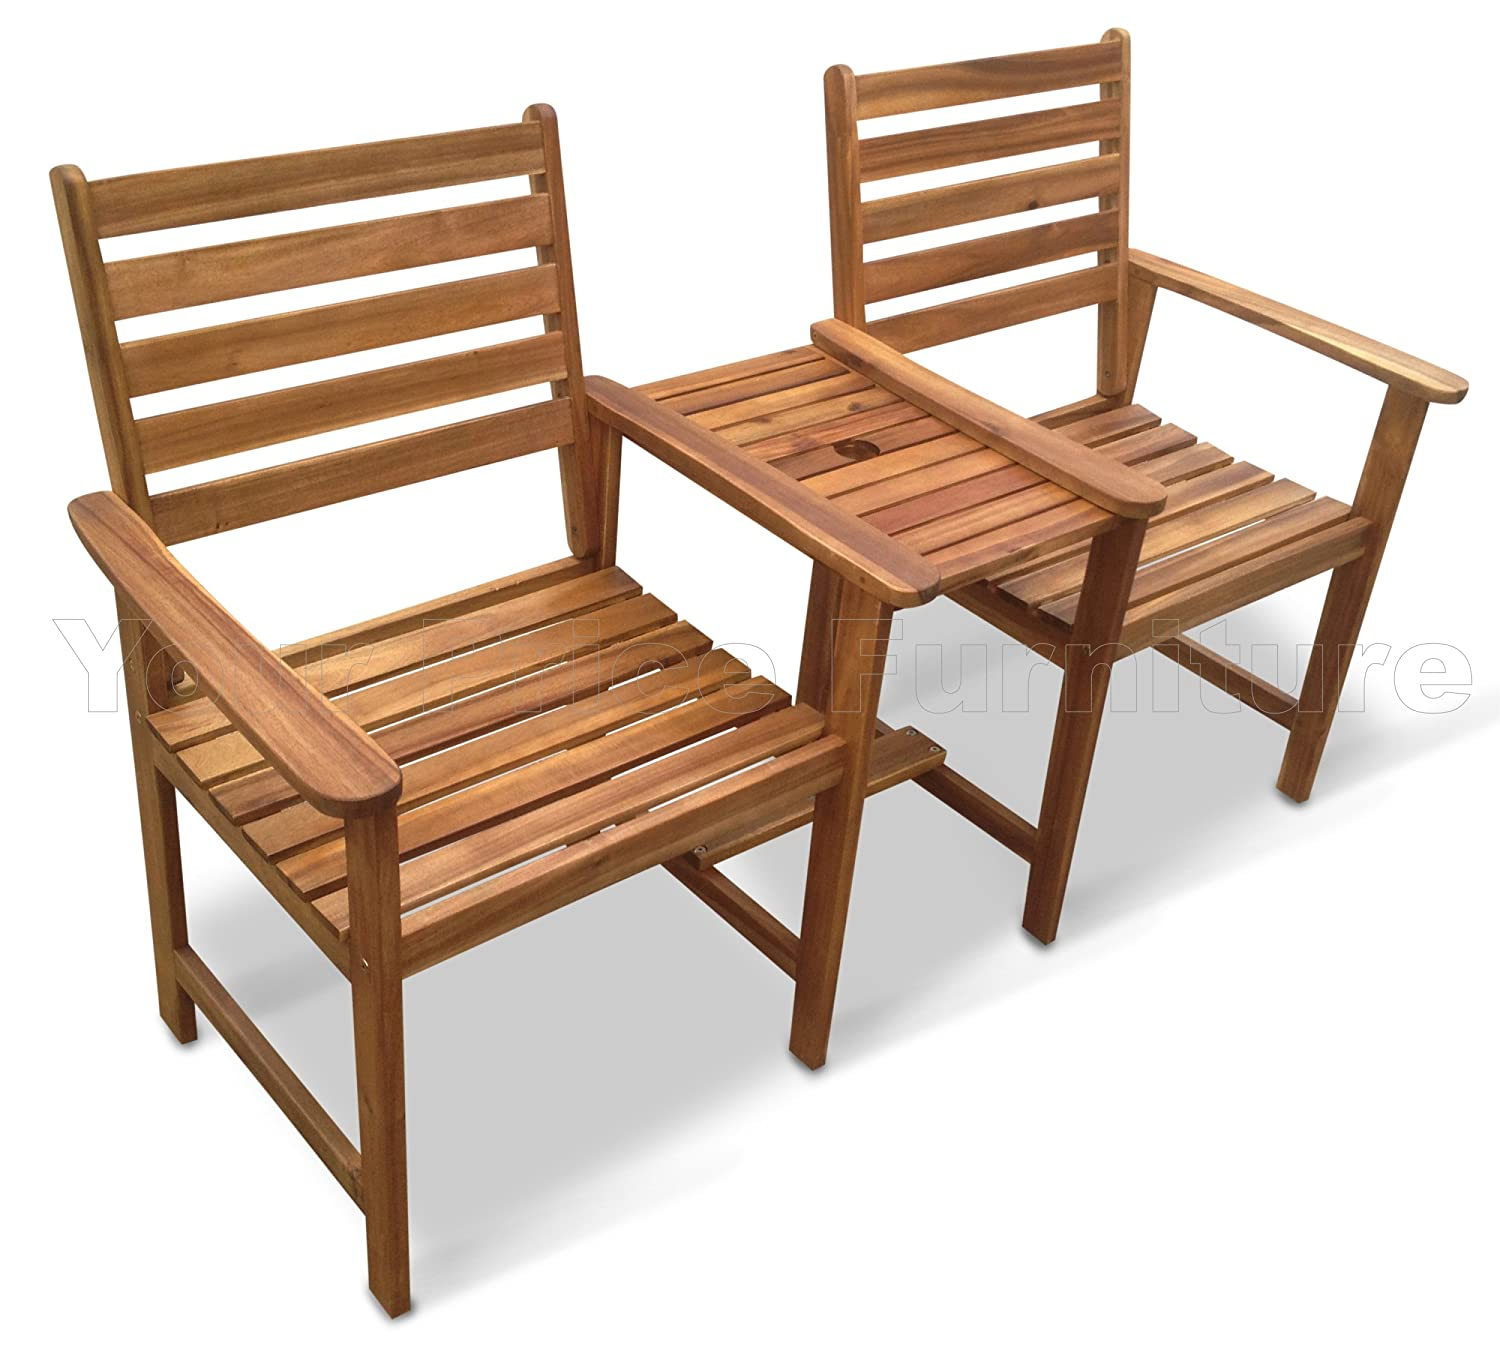 chester hardwood companion set love seat garden bench tete tete set jack and jill exclusively by your price furniture amazoncouk garden outdoors